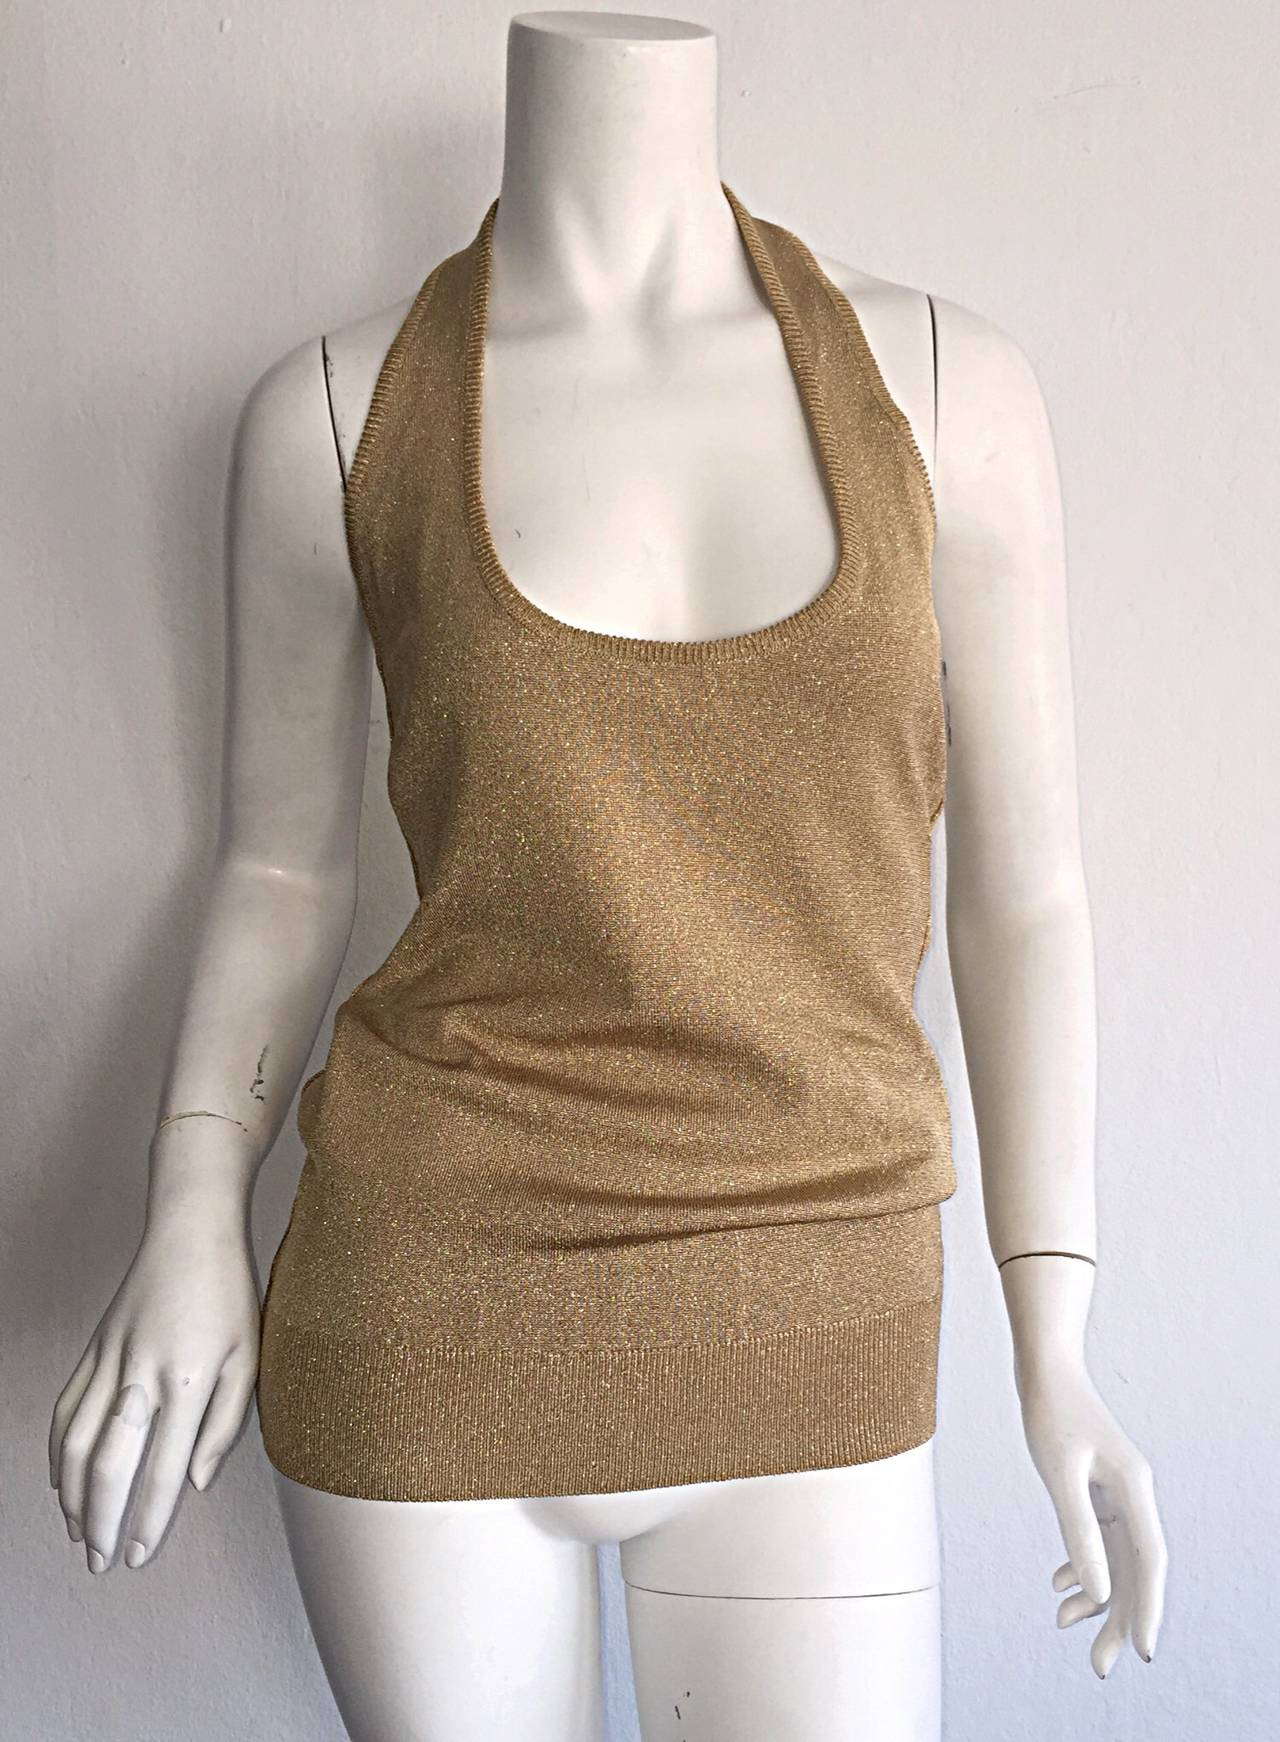 Beautiful brand new (with tags) vintage Donna Karan gold metallic halter top! Muted gold sparkle that is extremely versatile. Amazing under a sharp, fitted blazer! Looks great with shorts or denim. Perfect with wide legs trouser, skinny jeans, or